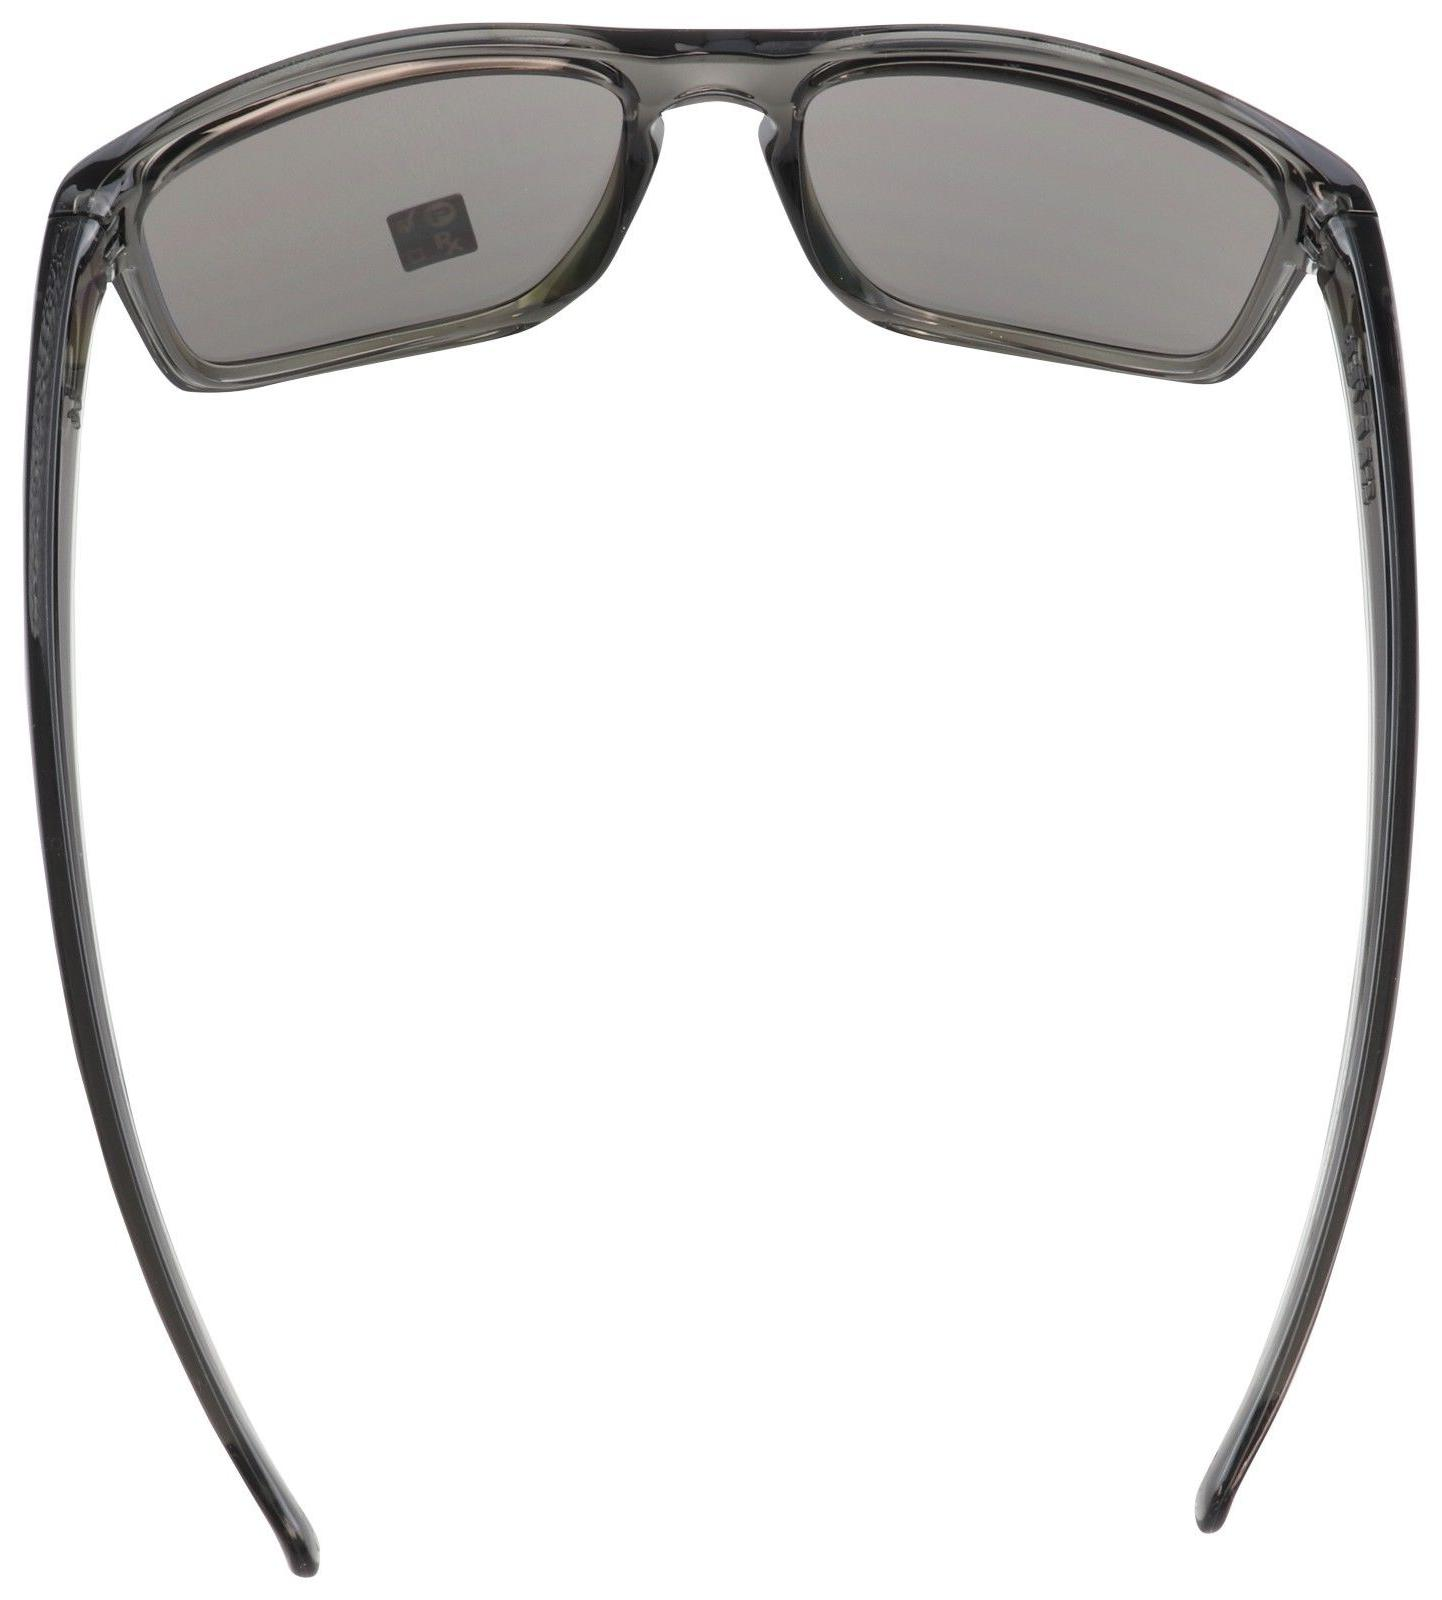 Oakley Grey Iridium Polarized